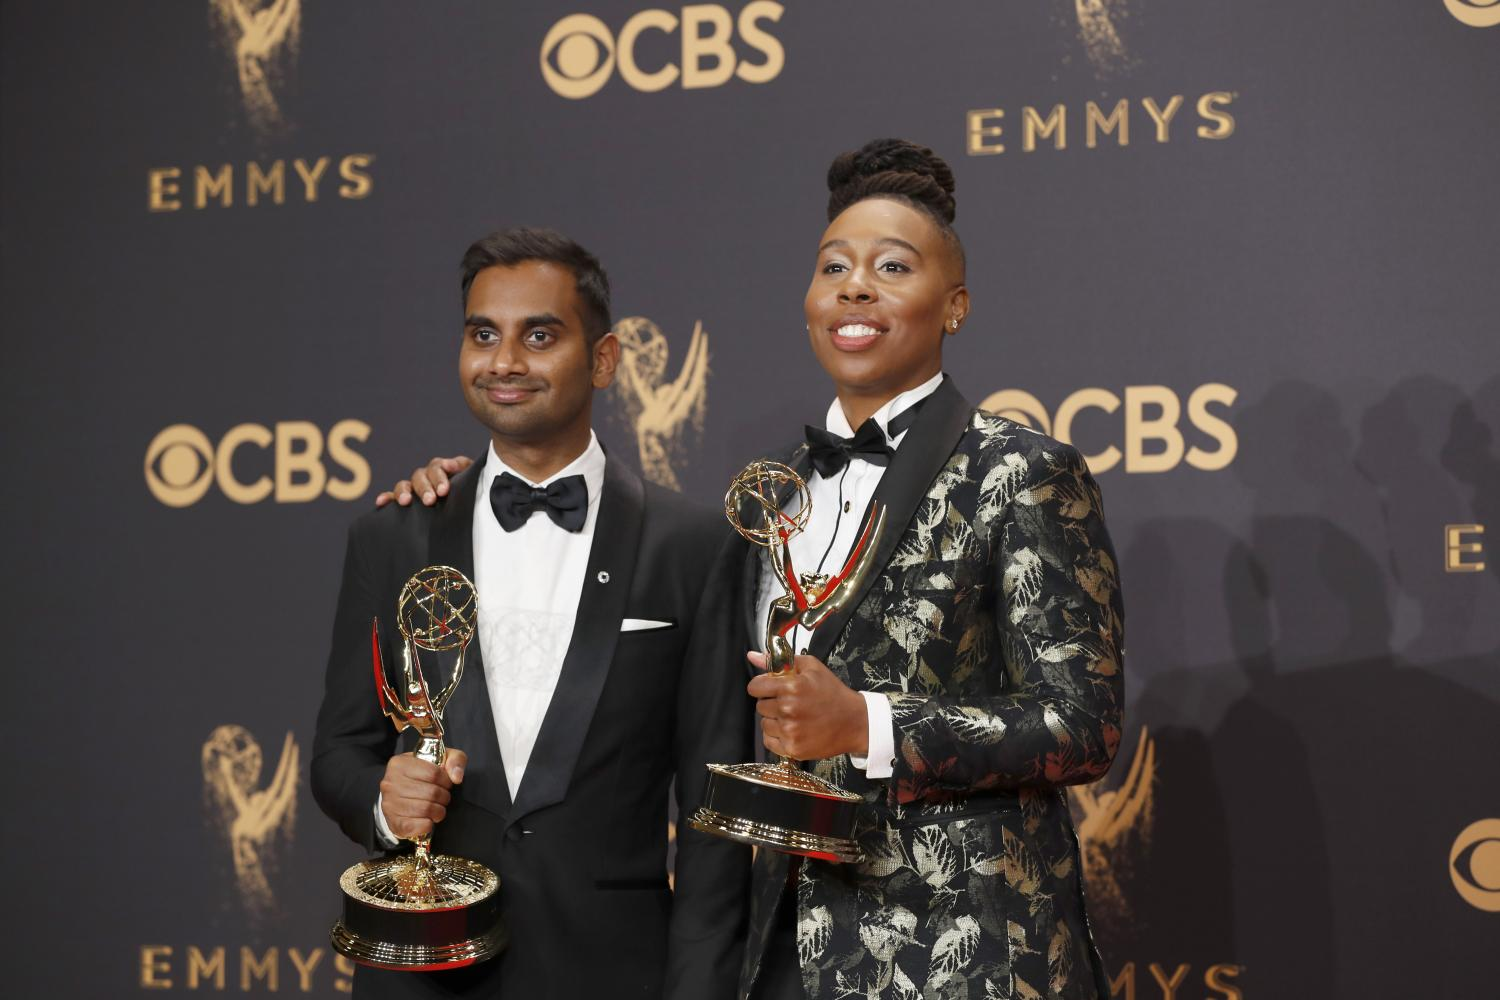 Aziz+Ansari+and+Lena+Waithe+in+the+Trophy+Room+at+the+69th+Primetime+Emmy+Awards+at+the+Microsoft+Theater+in+Los+Angeles+on+Sunday%2C+Sept.+17%2C+2017.